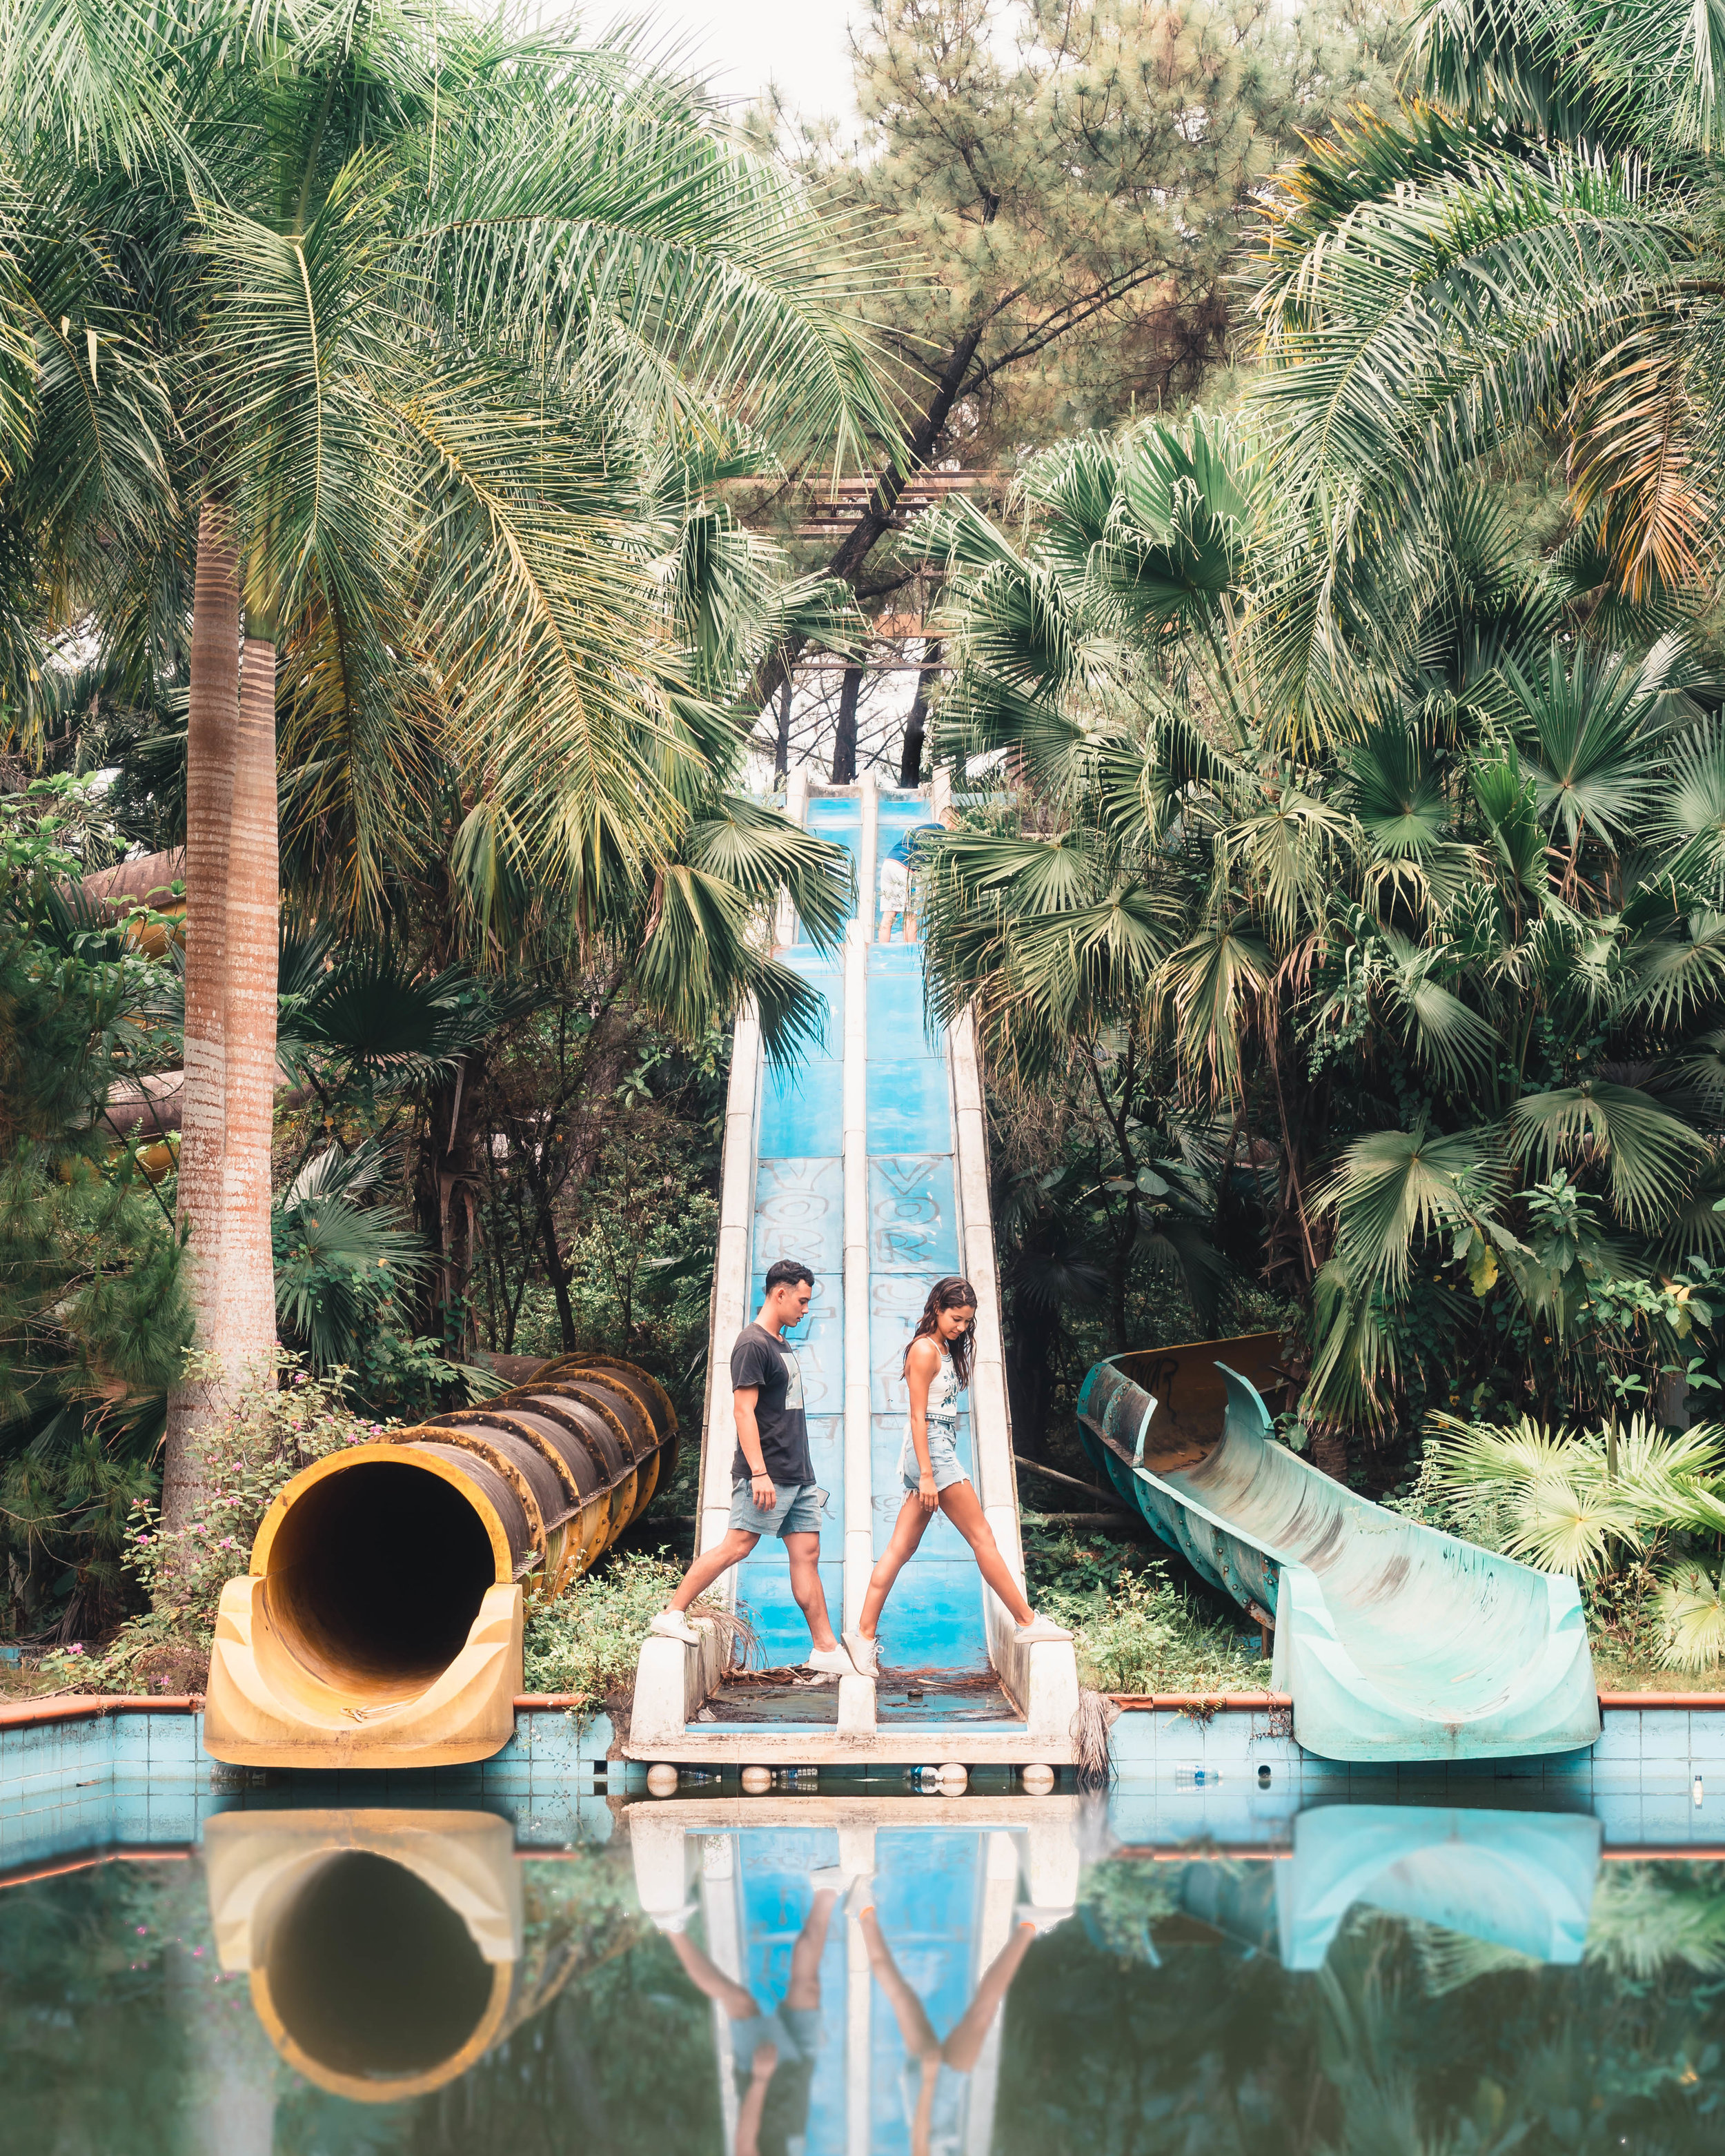 hue_waterpark_slides_3.jpg